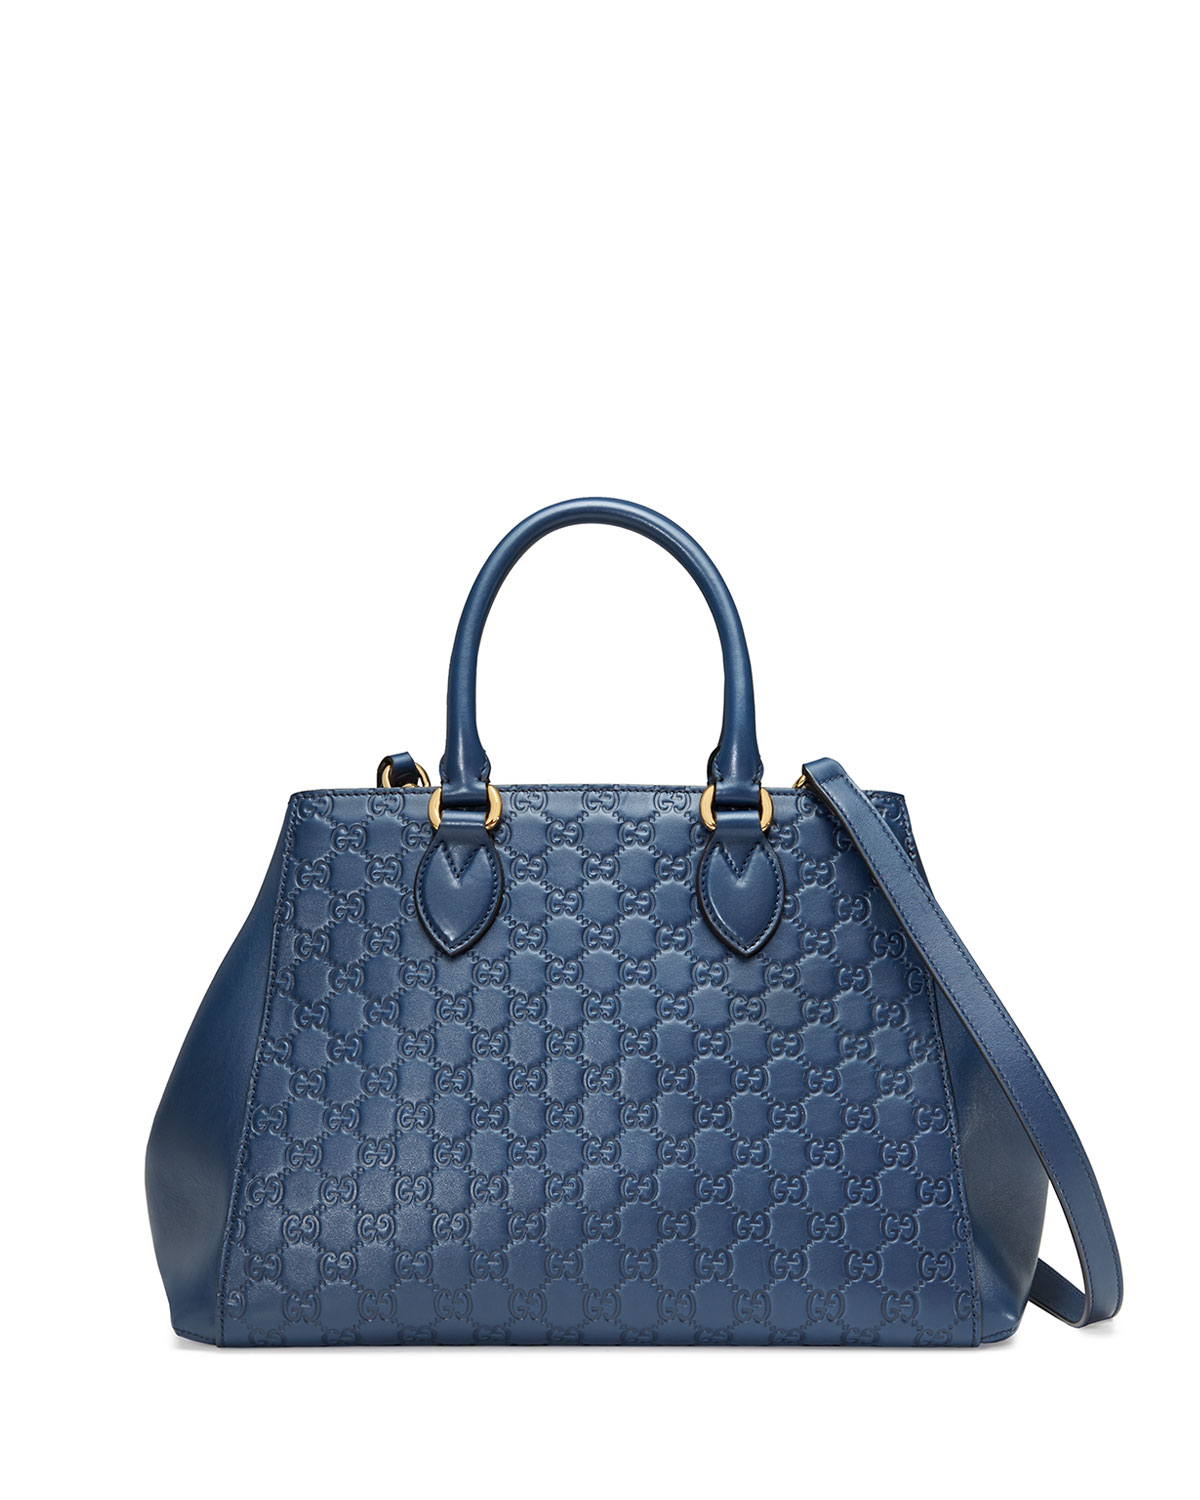 d957068aa0b Gucci Signature Top-Handle Tote Bag